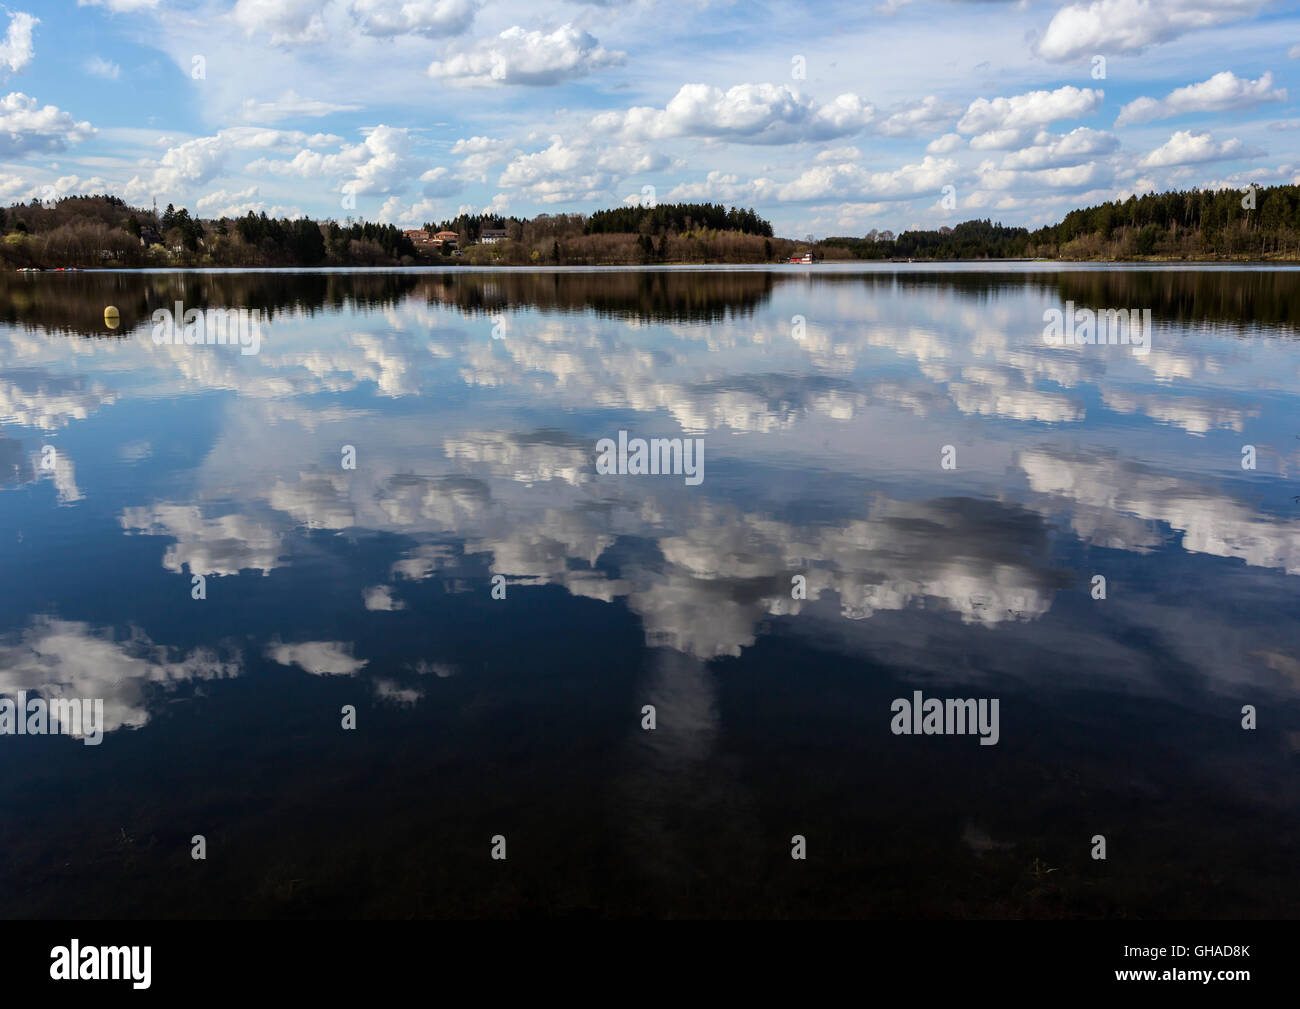 Cloud reflections on a still lake - Stock Image